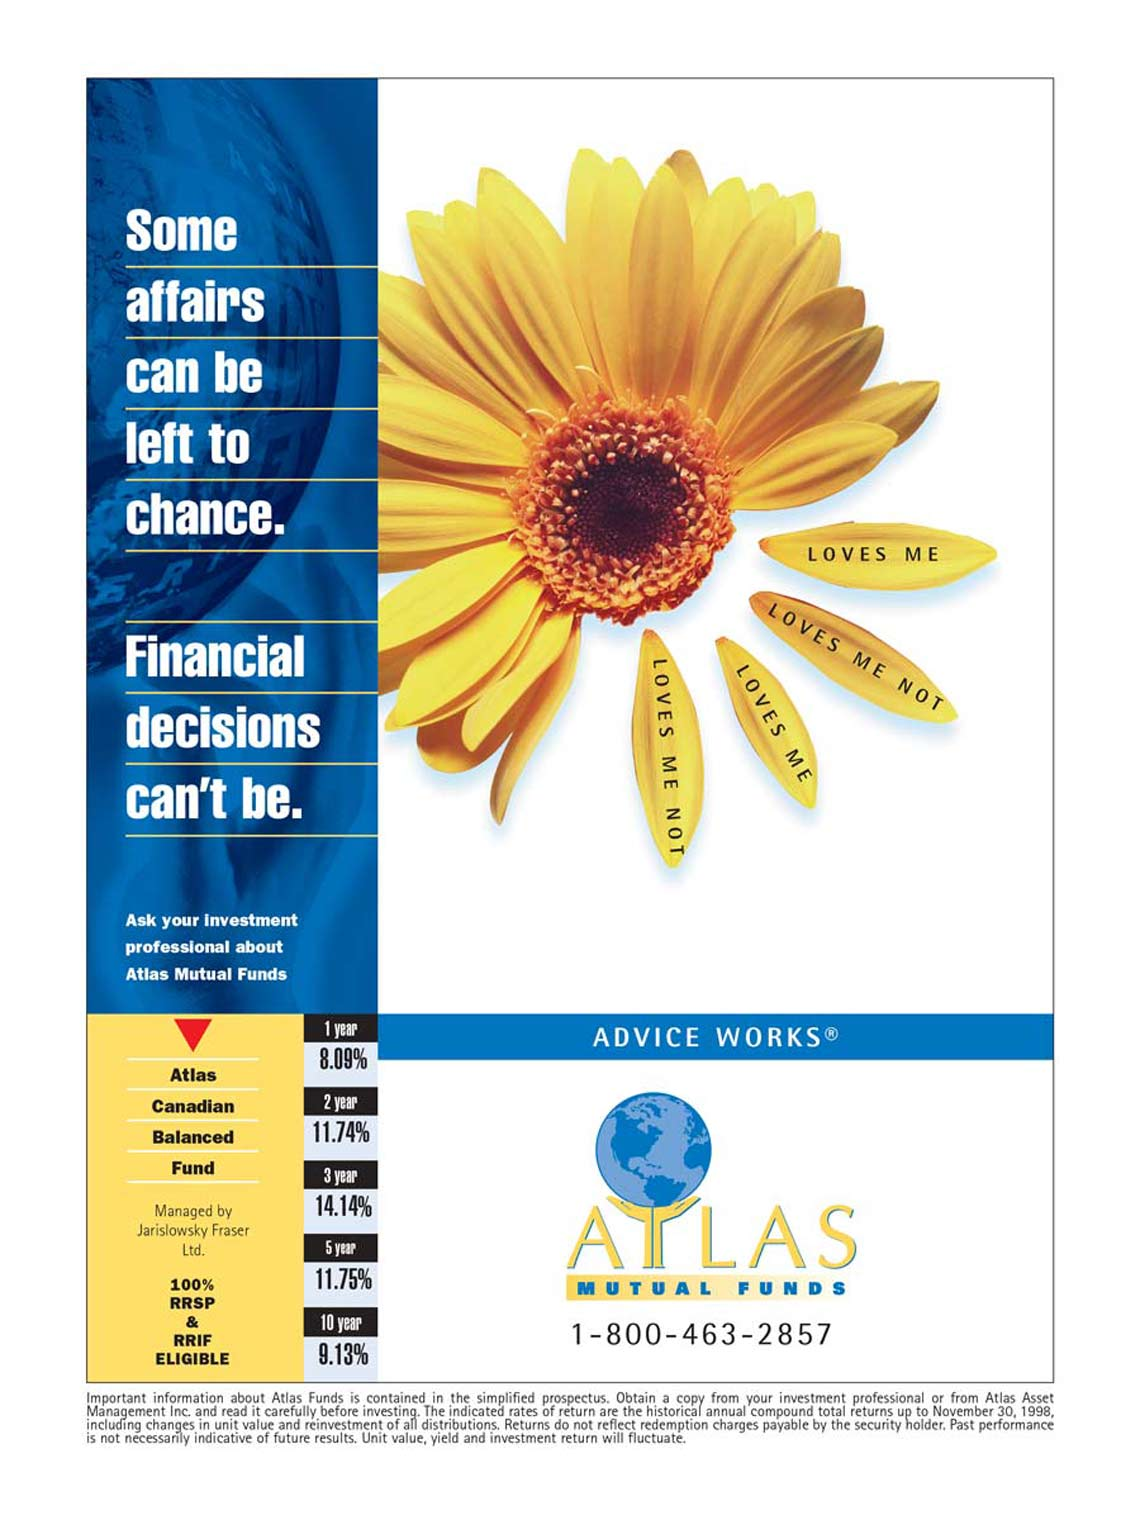 Atlas Mutual Funds